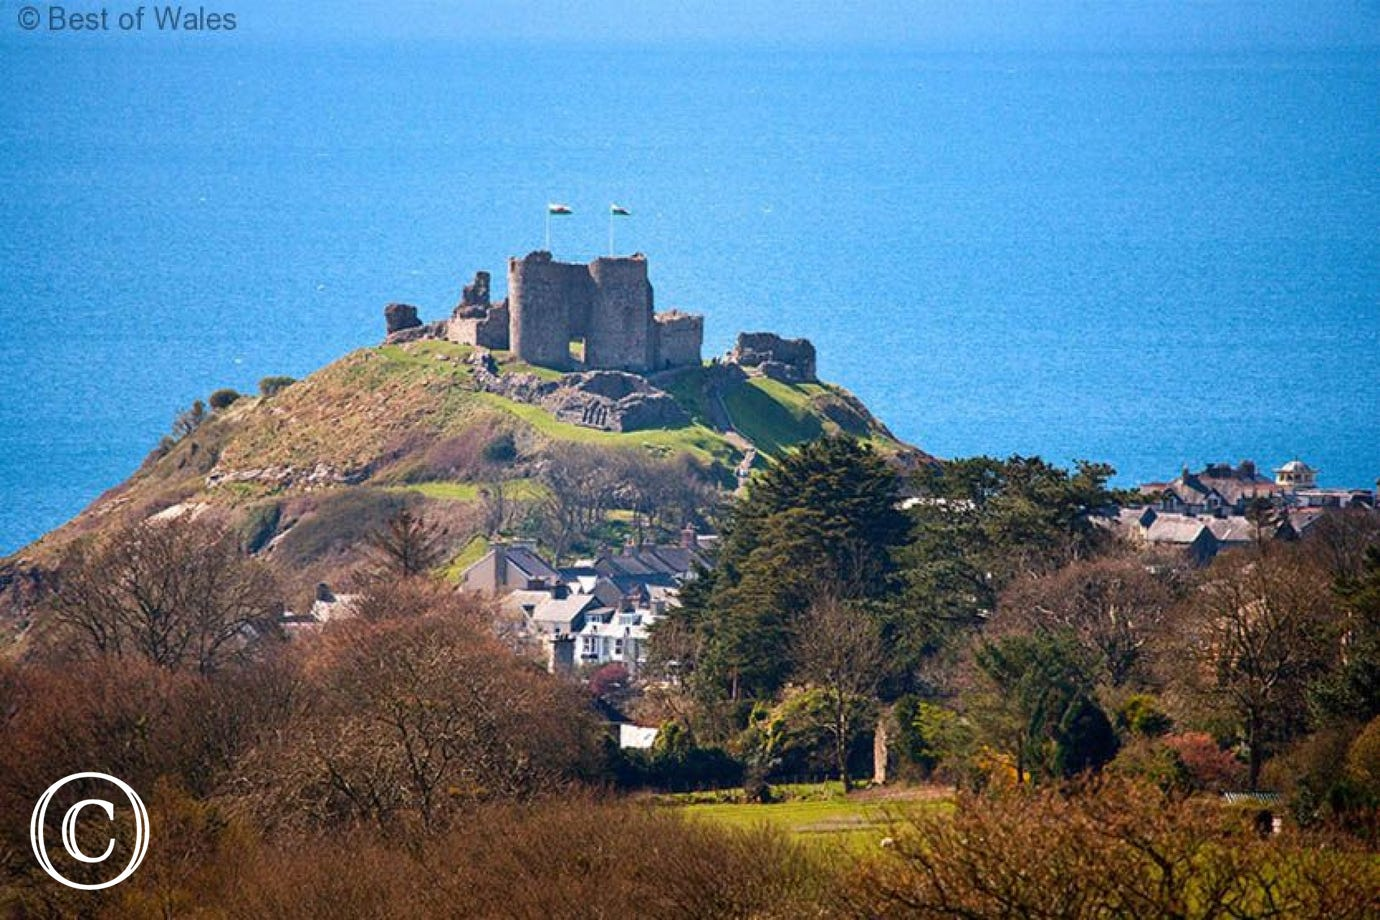 Cricieth Castle, just 5 miles away where you will also find 2 beaches